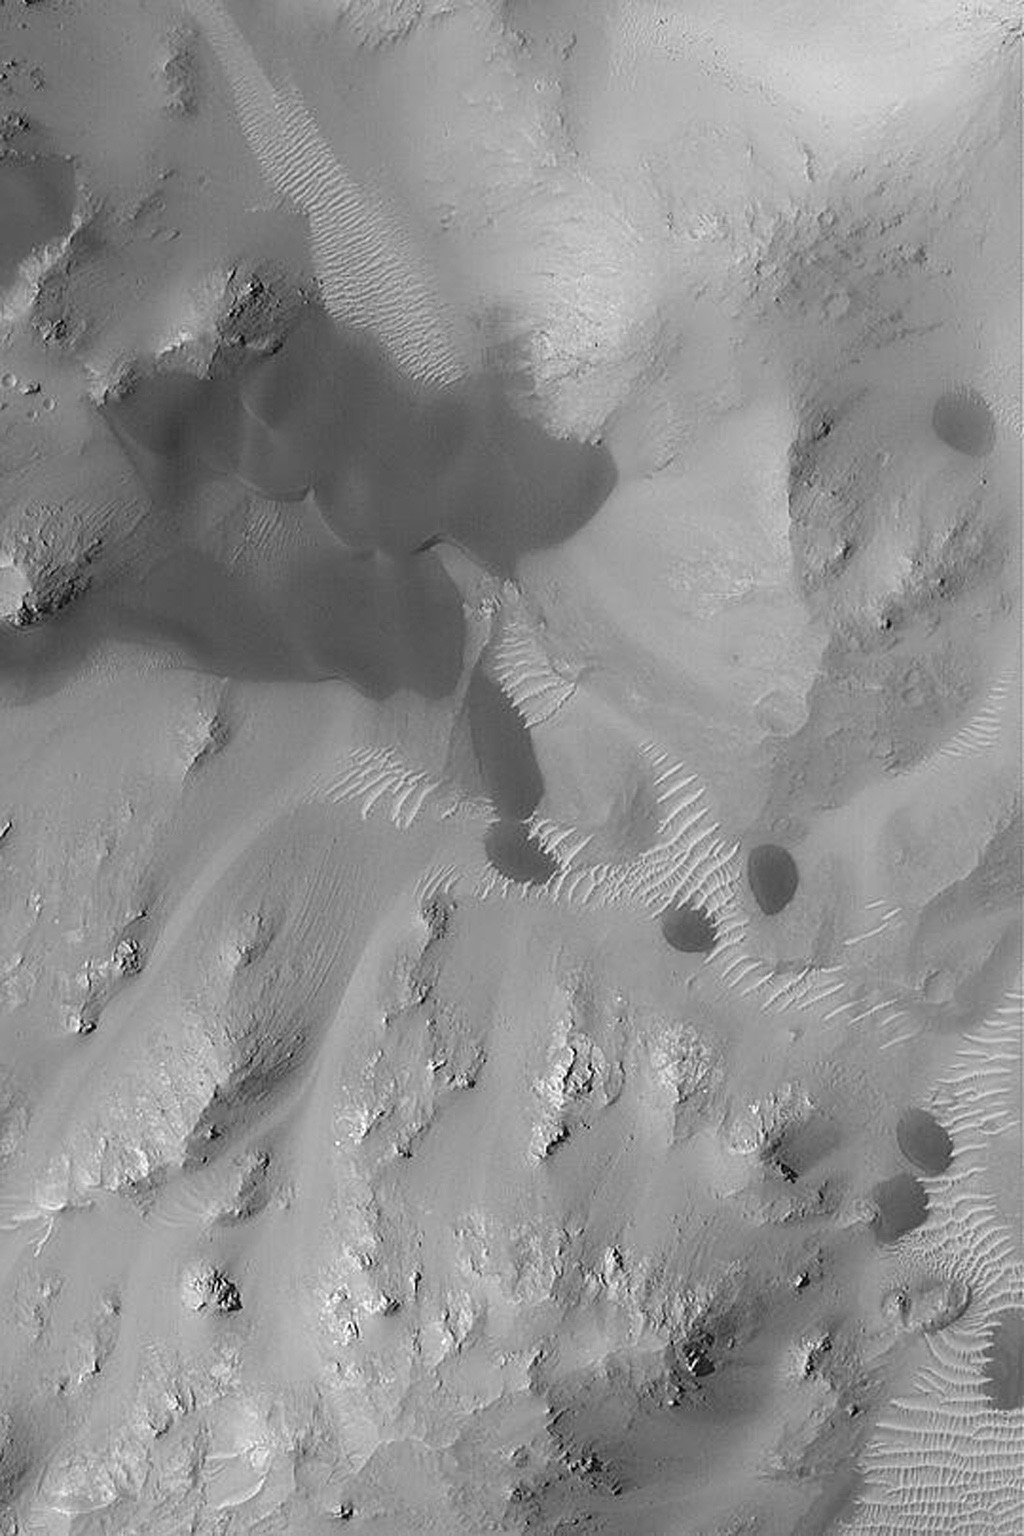 NASA's Mars Global Surveyor shows dark sand dunes and lighter-toned ripples trapped among the mountainous central peak of an old impact crater in Terra Tyrrhena on Mars.